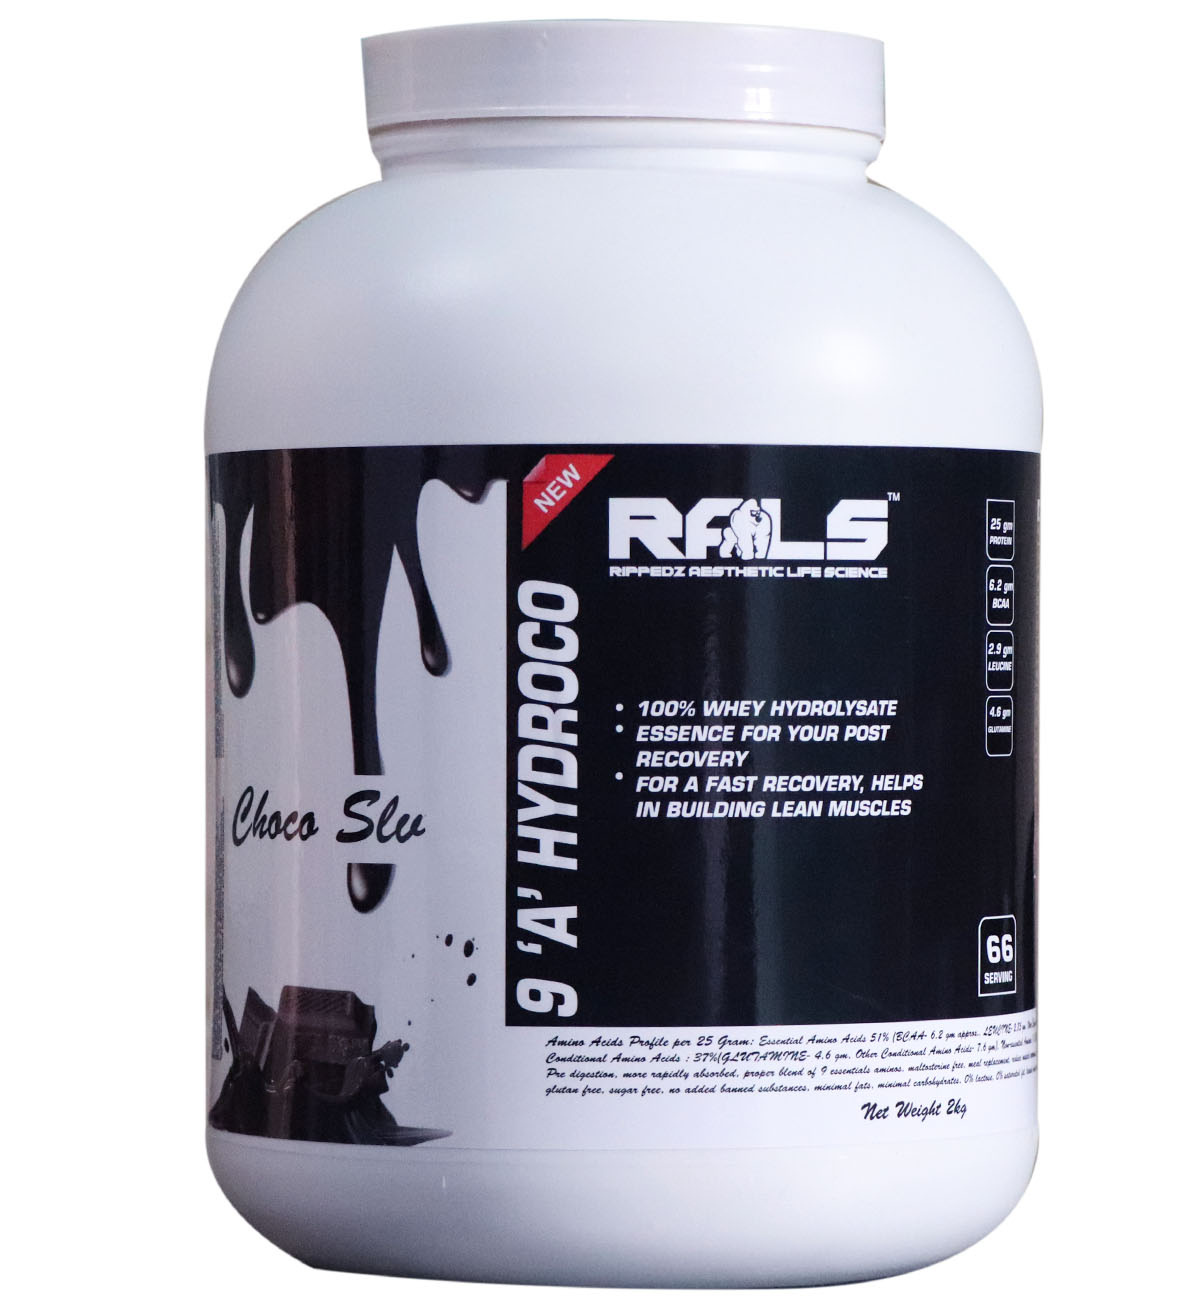 Rals – Be Fit Be Aesthetic